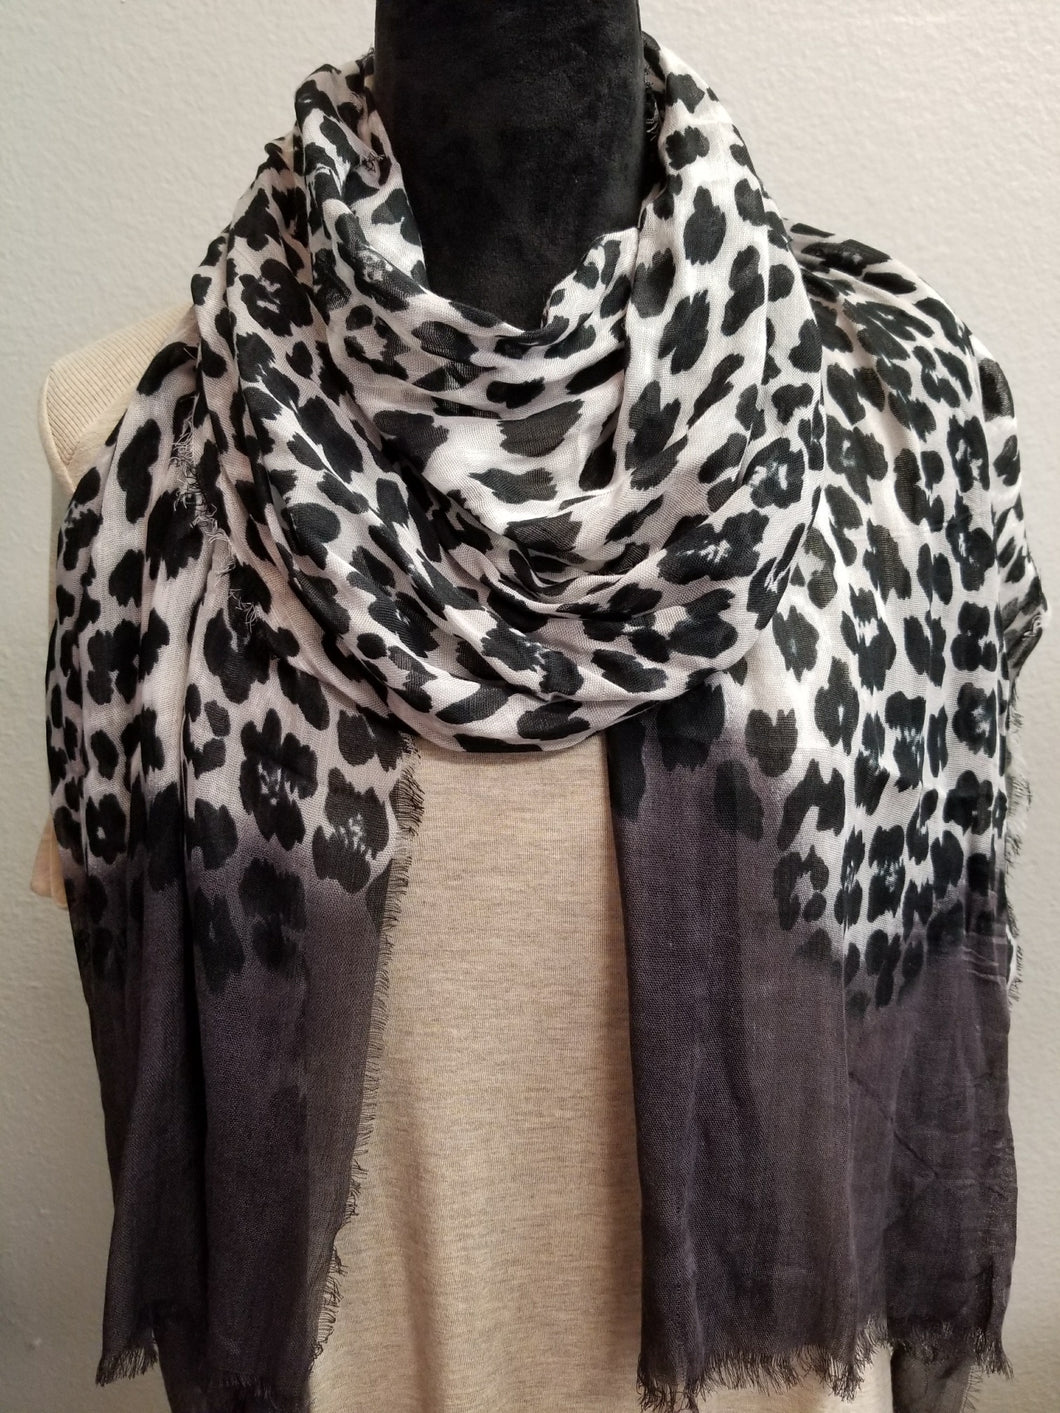 Leopard Print Scarf with Charcoal Tips